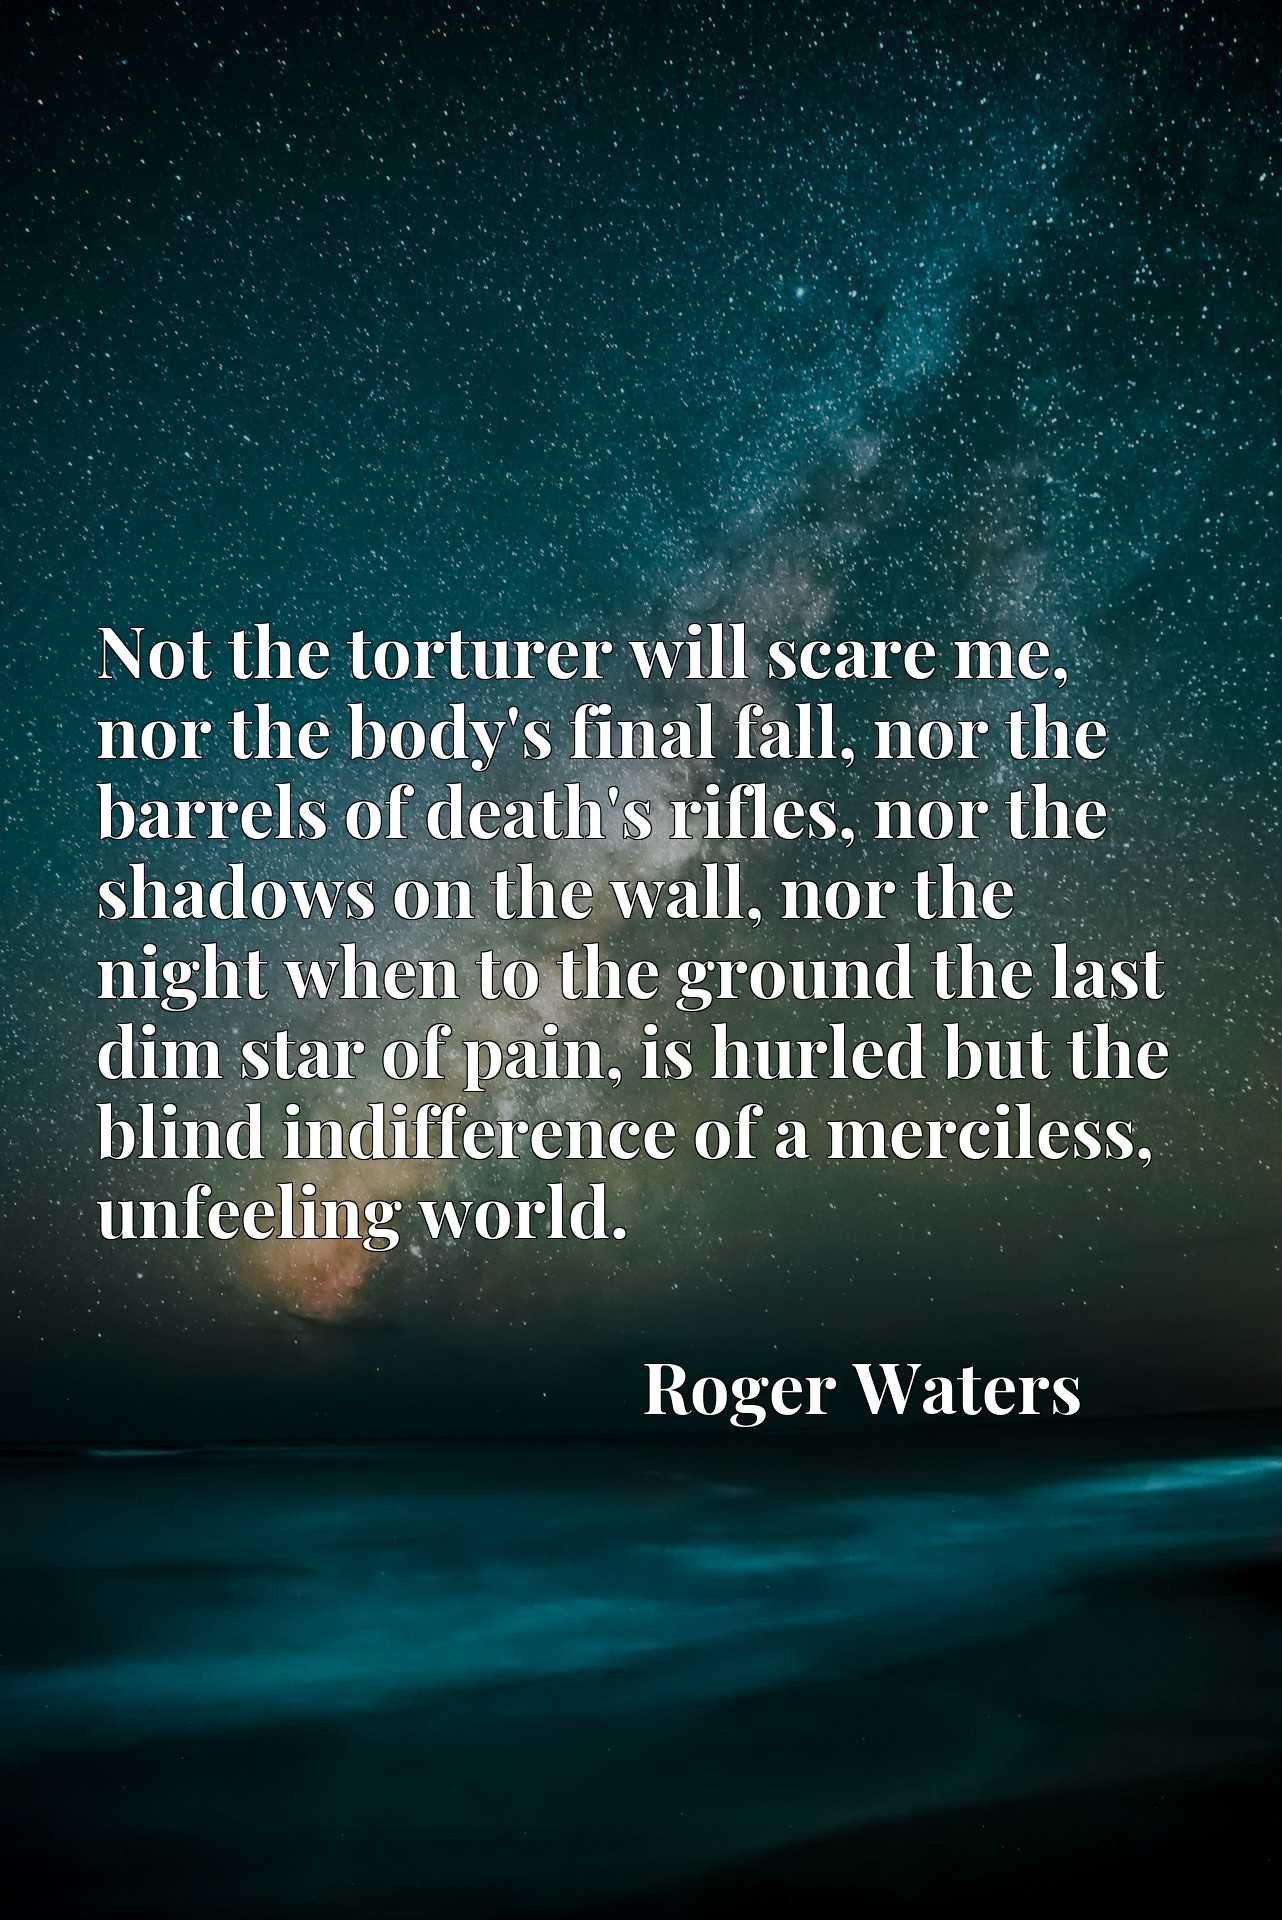 Not the torturer will scare me, nor the body's final fall, nor the barrels of death's rifles, nor the shadows on the wall, nor the night when to the ground the last dim star of pain, is hurled but the blind indifference of a merciless, unfeeling world.